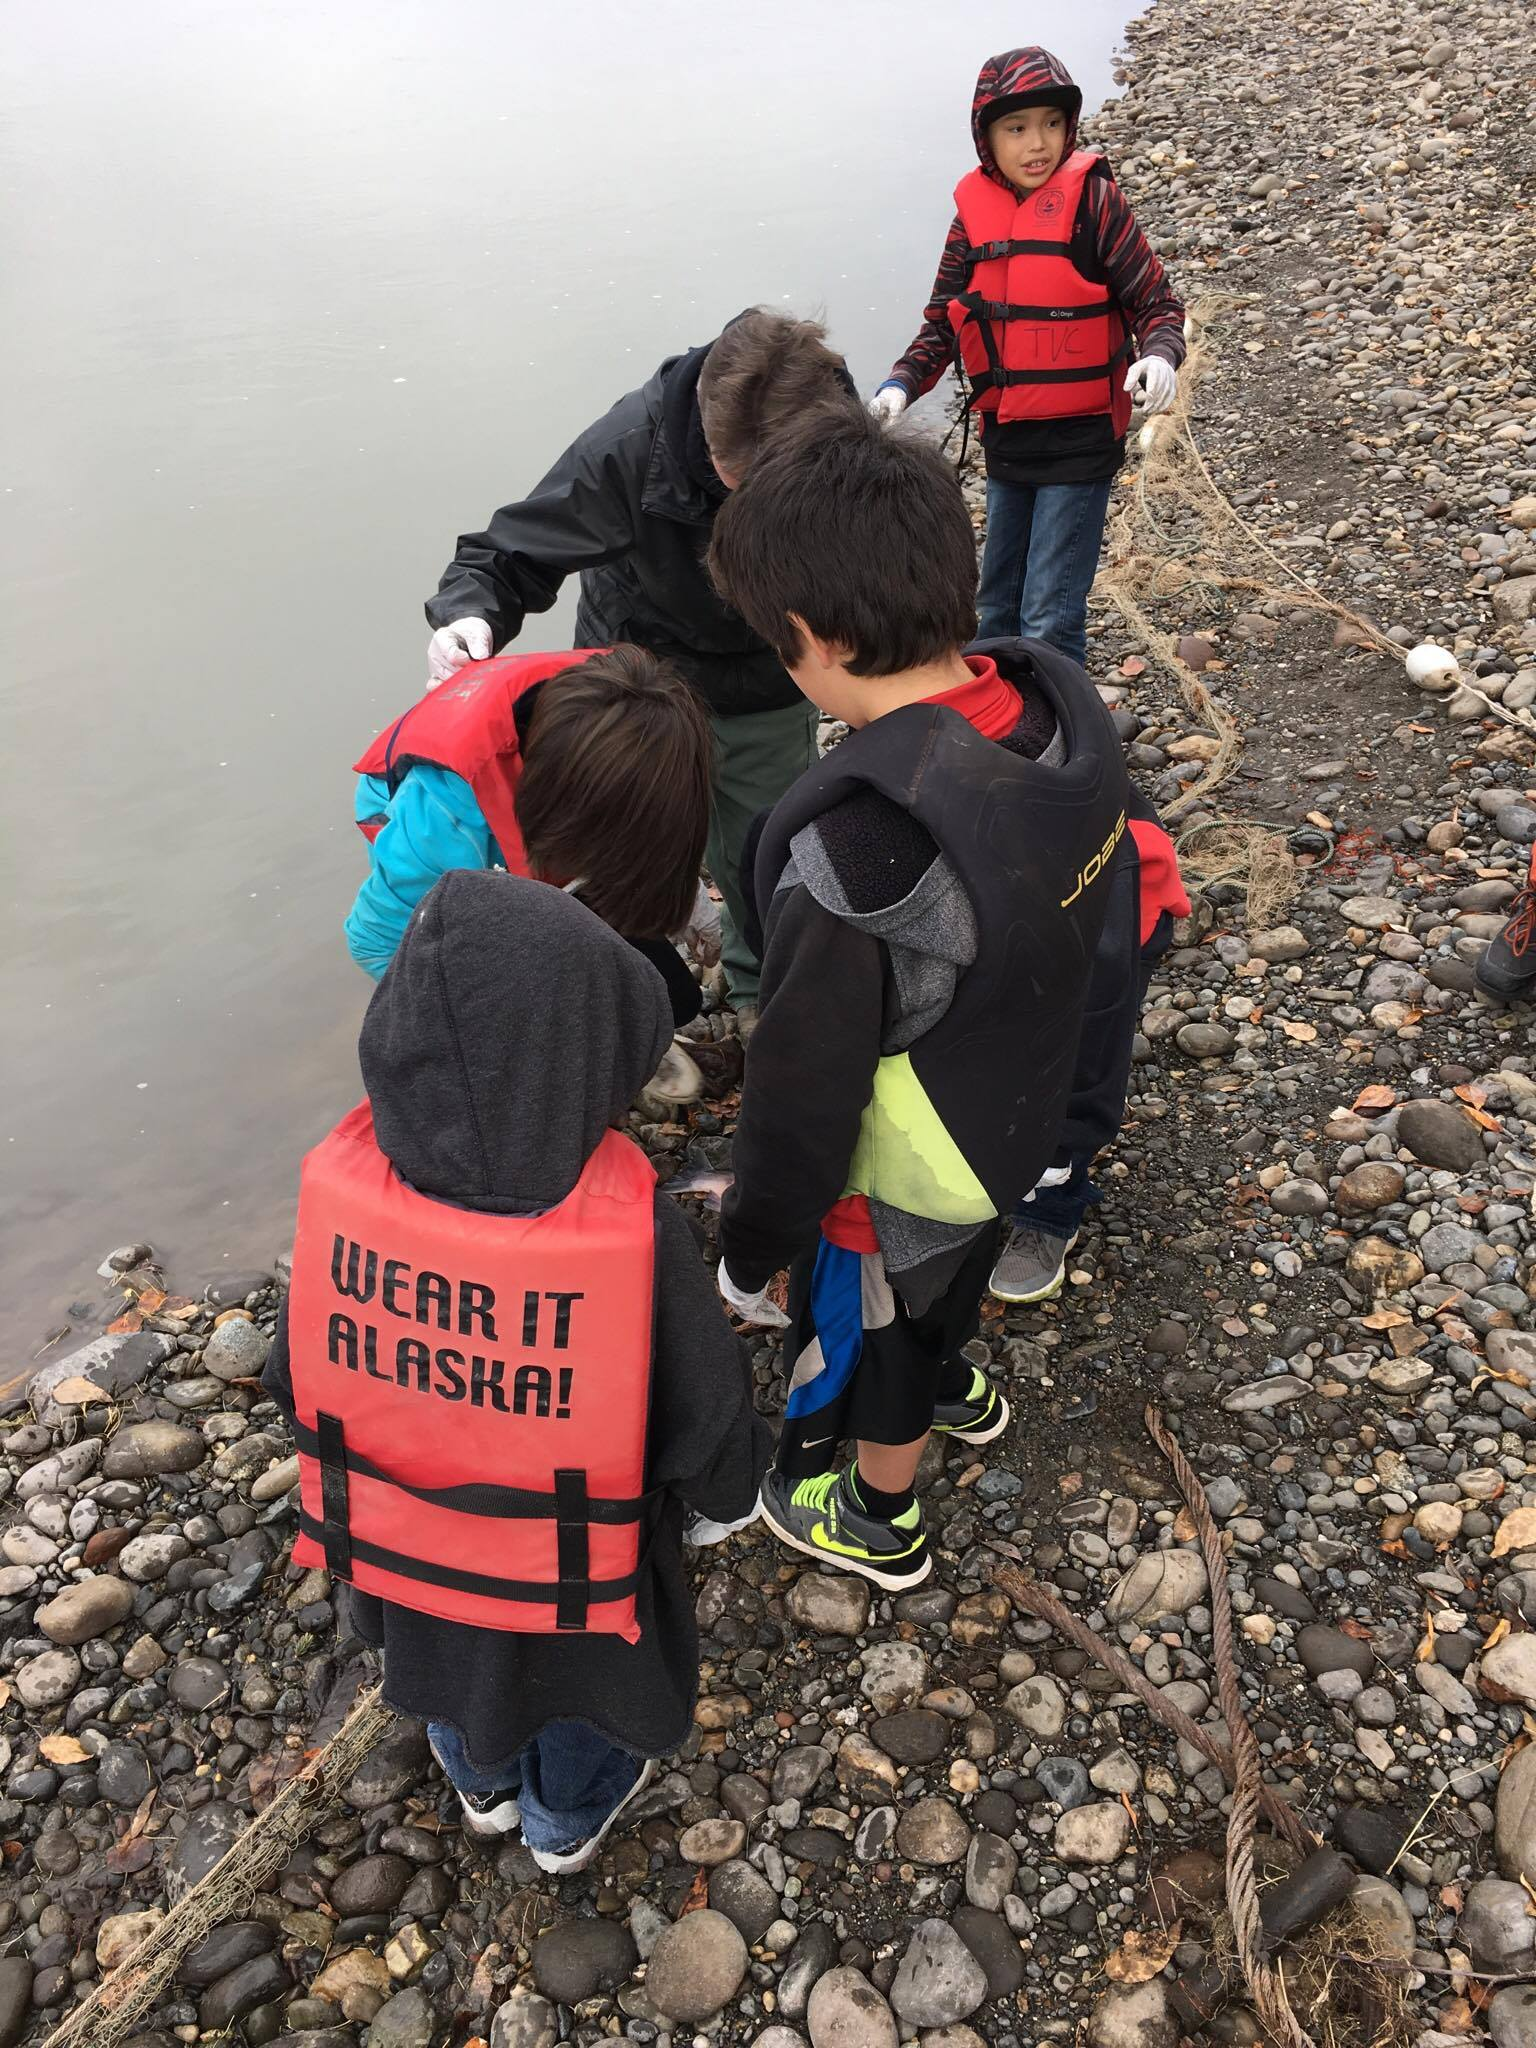 Students leaning in to check fish net.